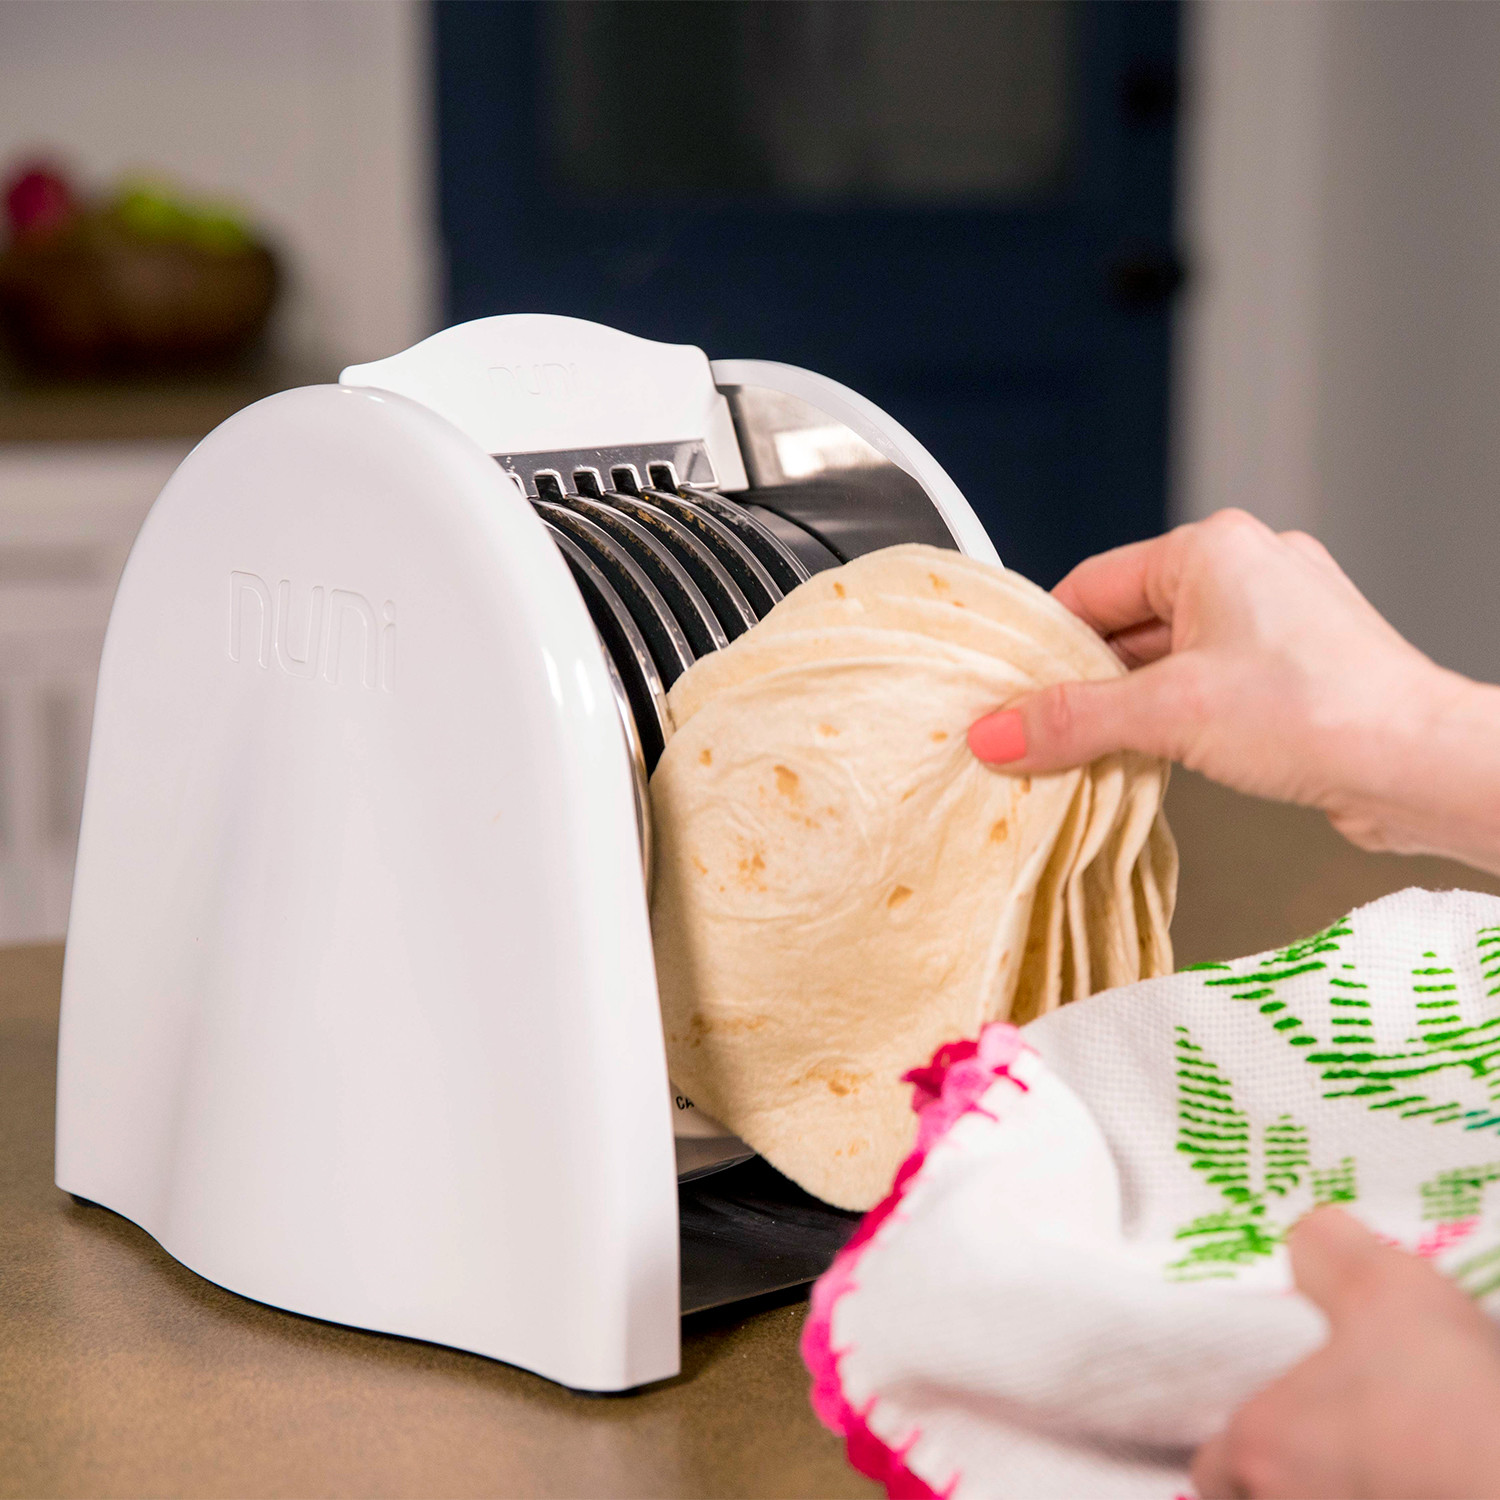 NUNI Tortilla Toaster: 6 Tacos In Less Than One Minute